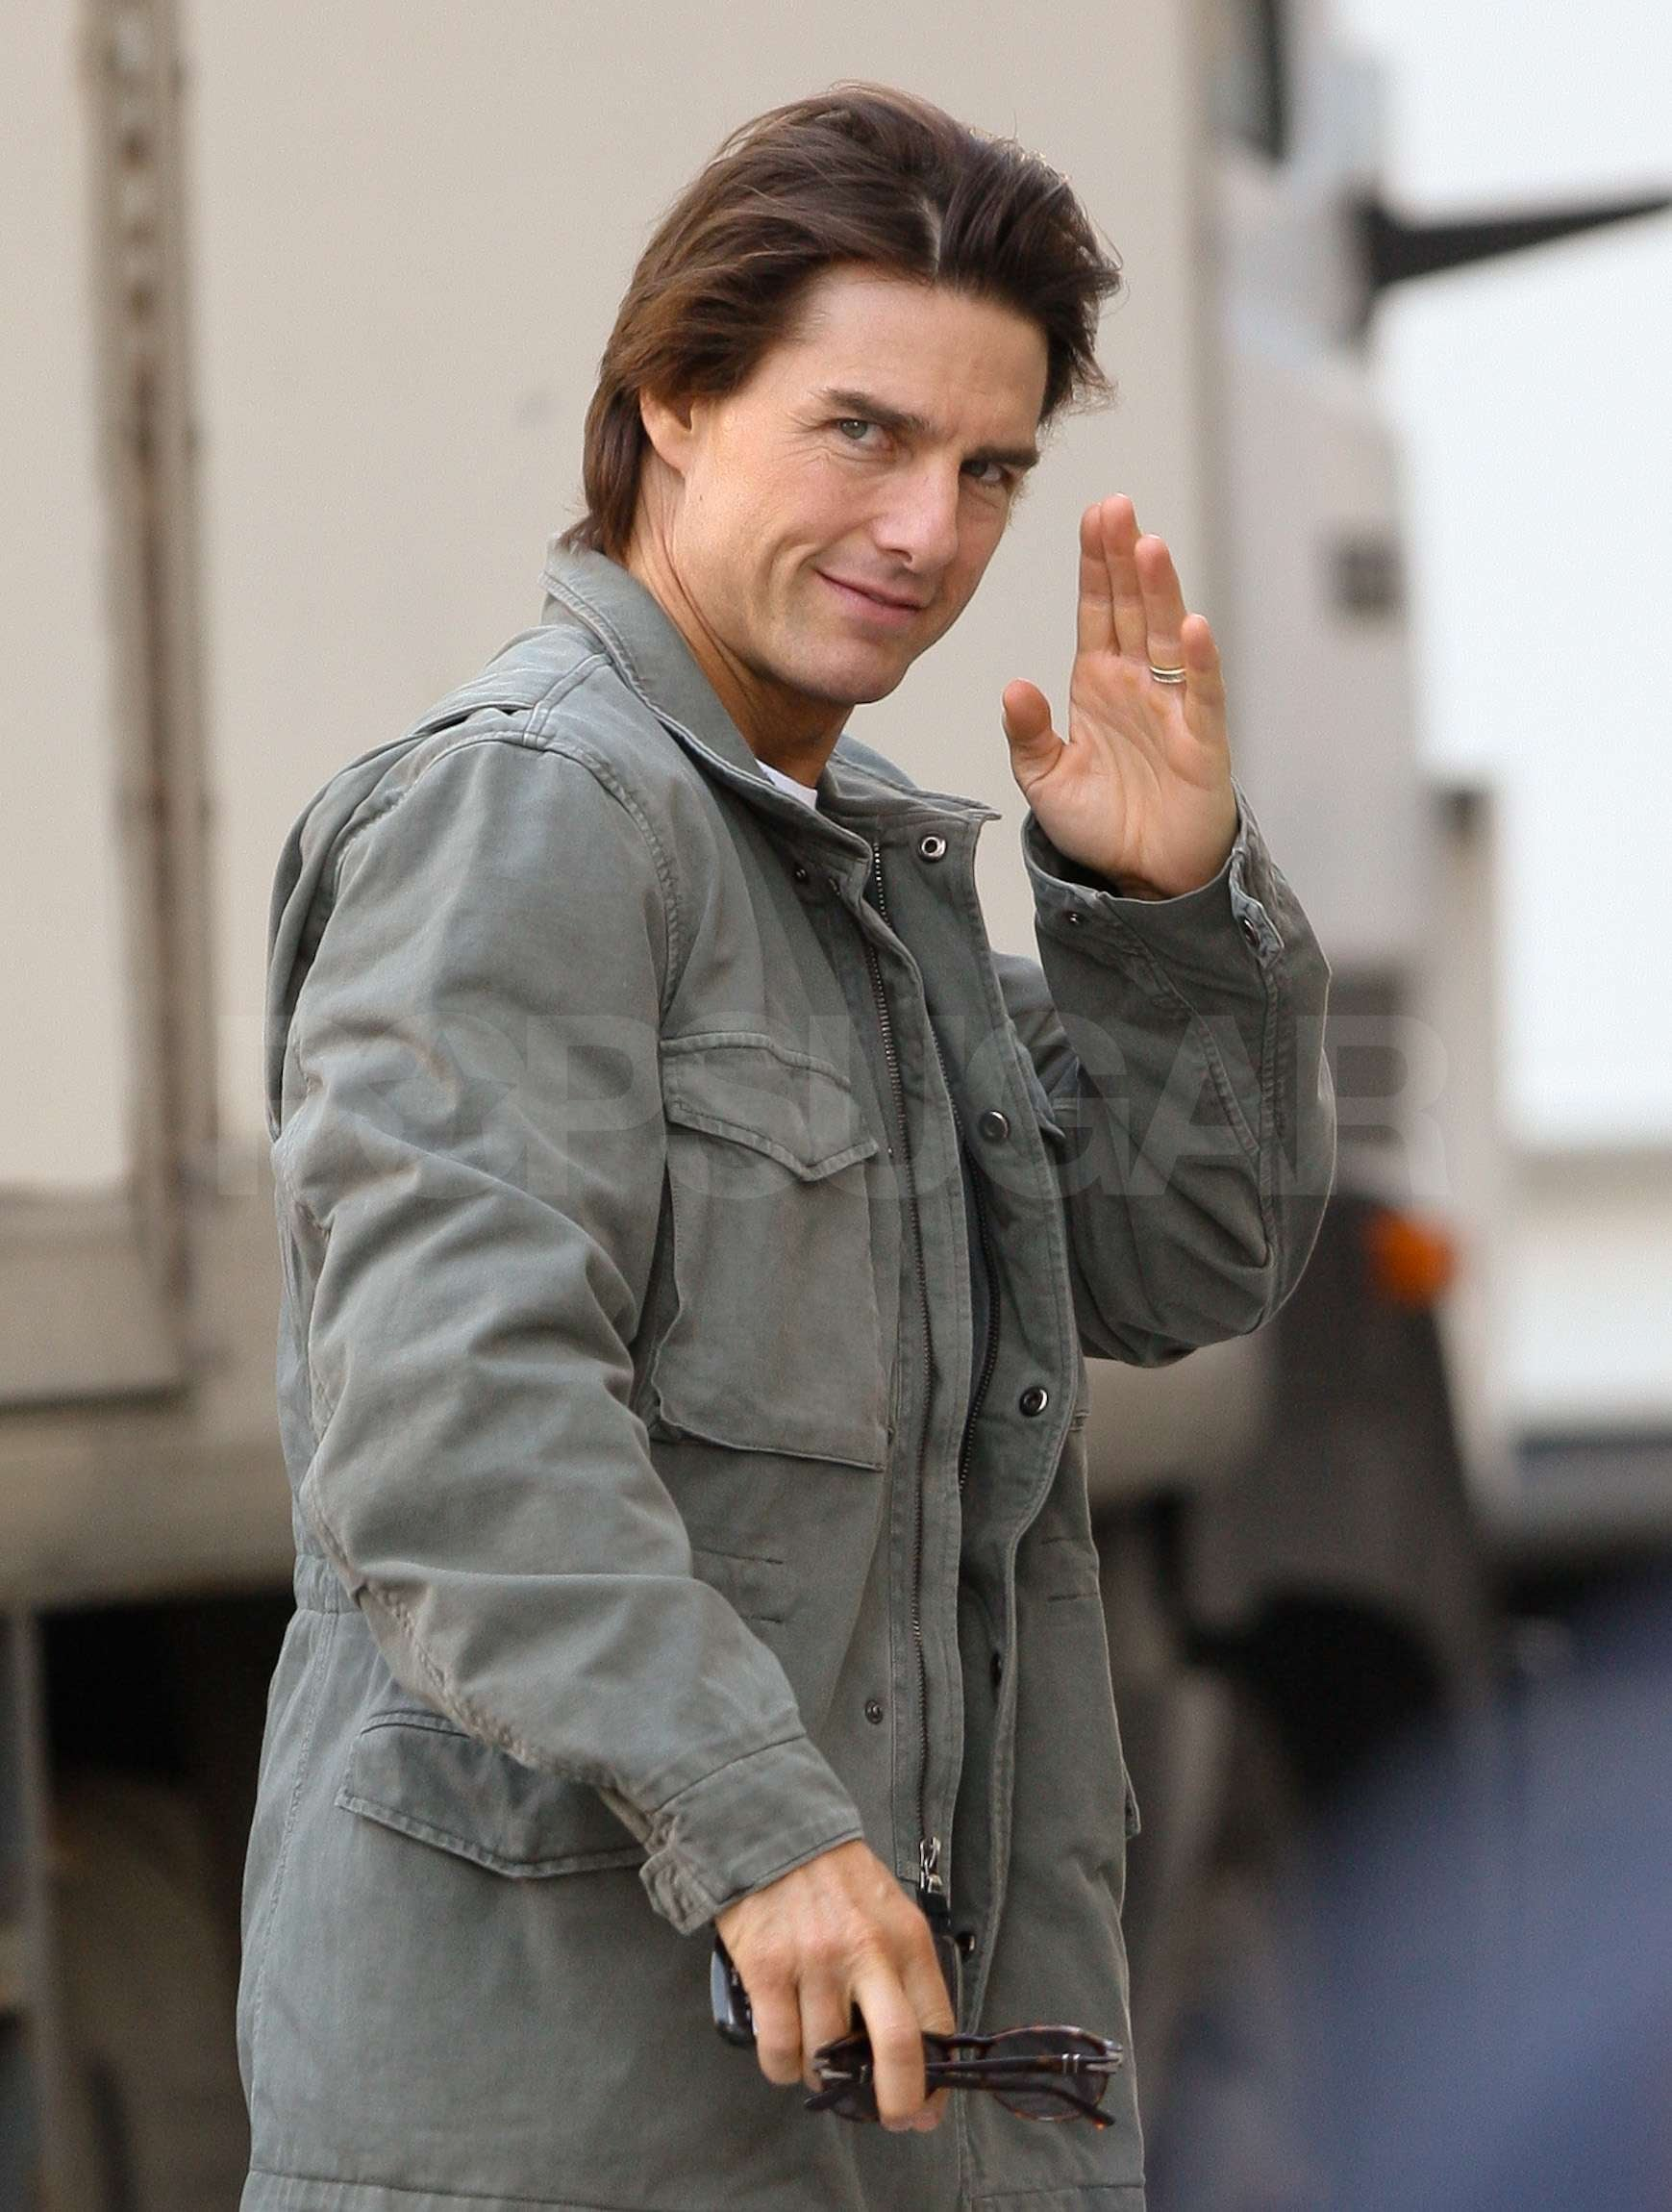 Pictures of Tom Cruise...